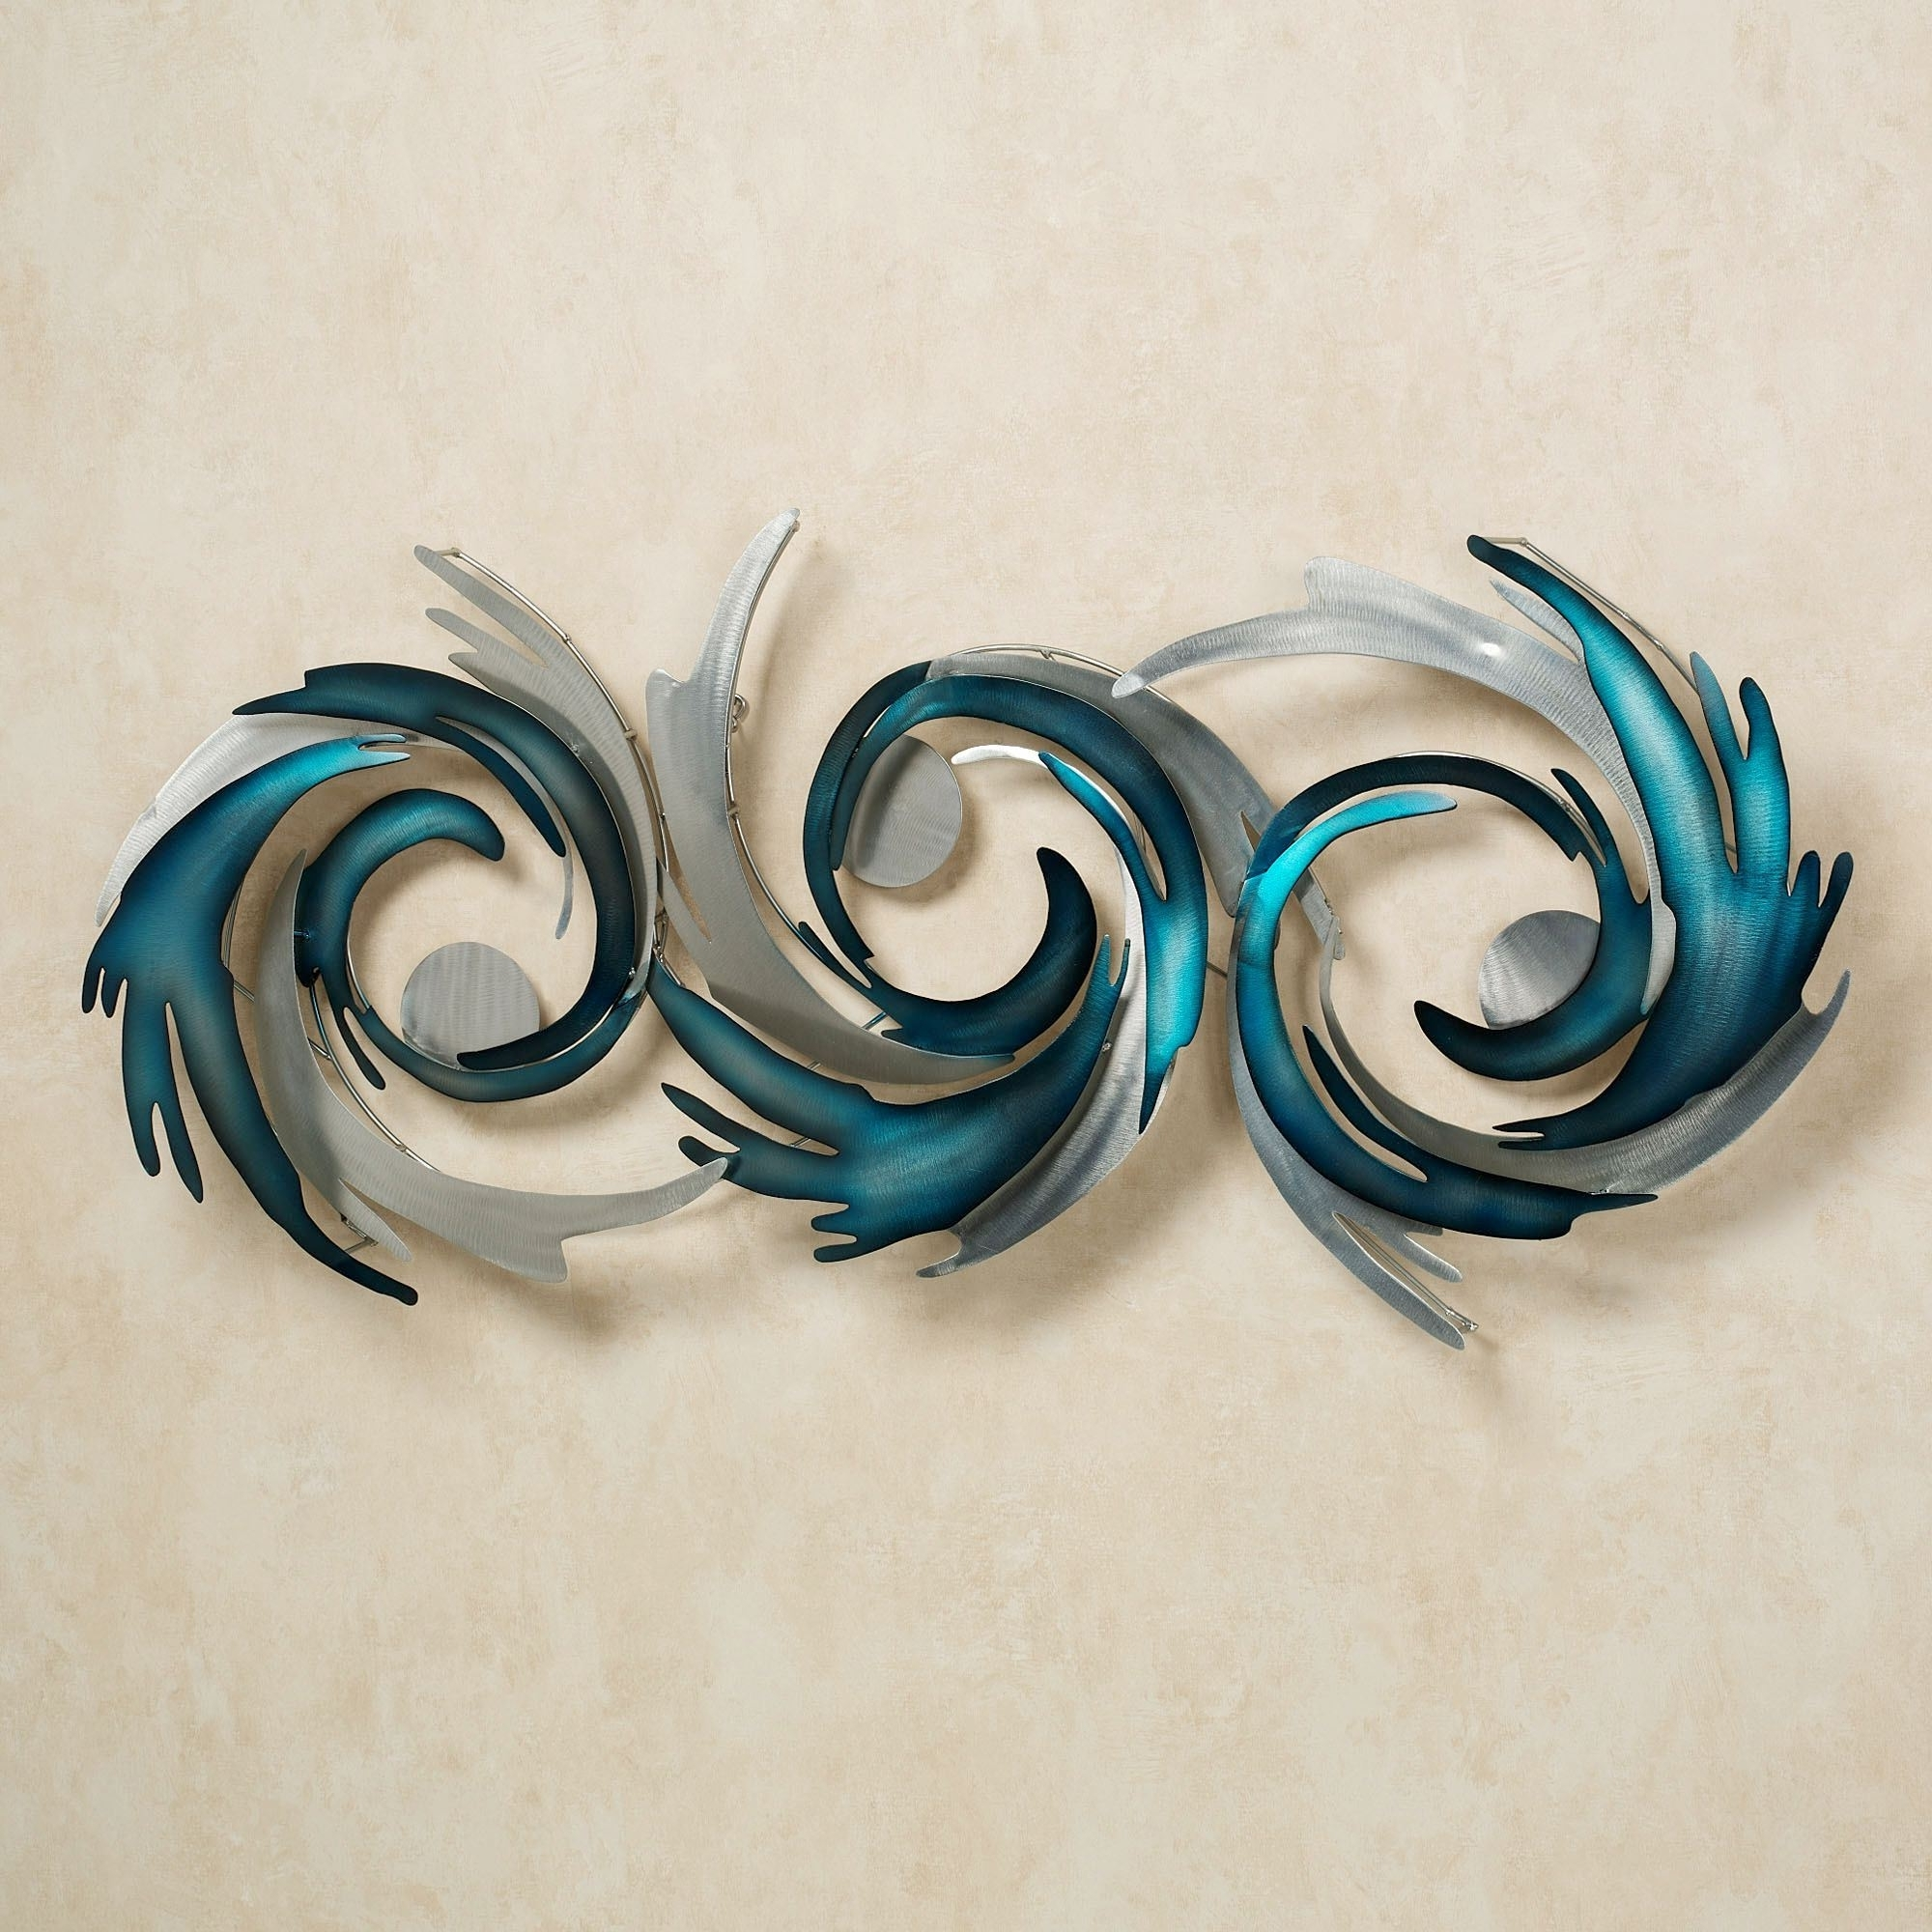 Well Known Outdoor Wall Sculpture Art Throughout Wall Decor For Dining Area, Blue Metal Wall Sculpture Art (View 14 of 15)